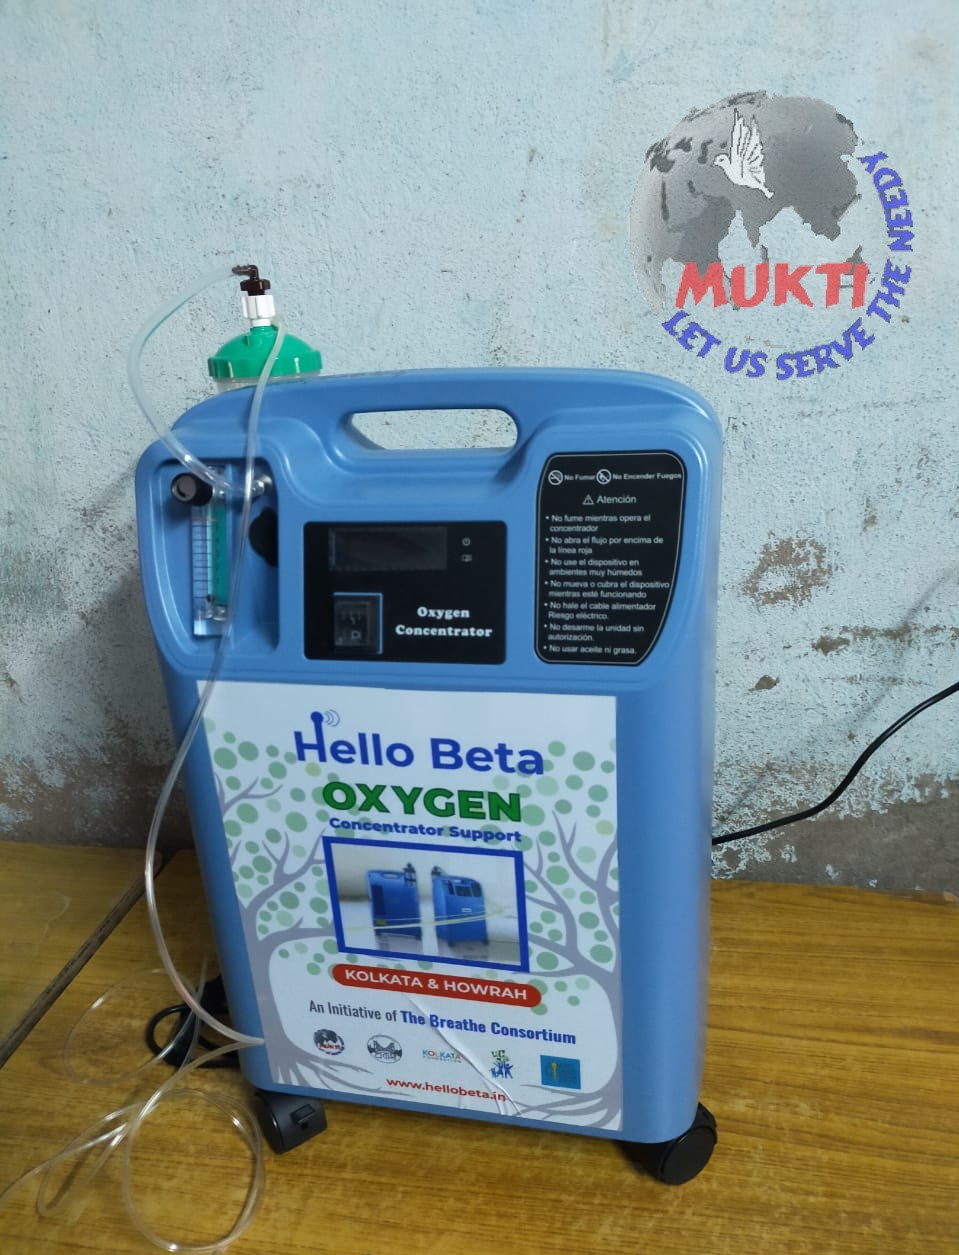 Mukti With Asfhm Provided Oxygen Concentrator At The Oxygen Parlor Of Kalinagar Under Kakdwip Block